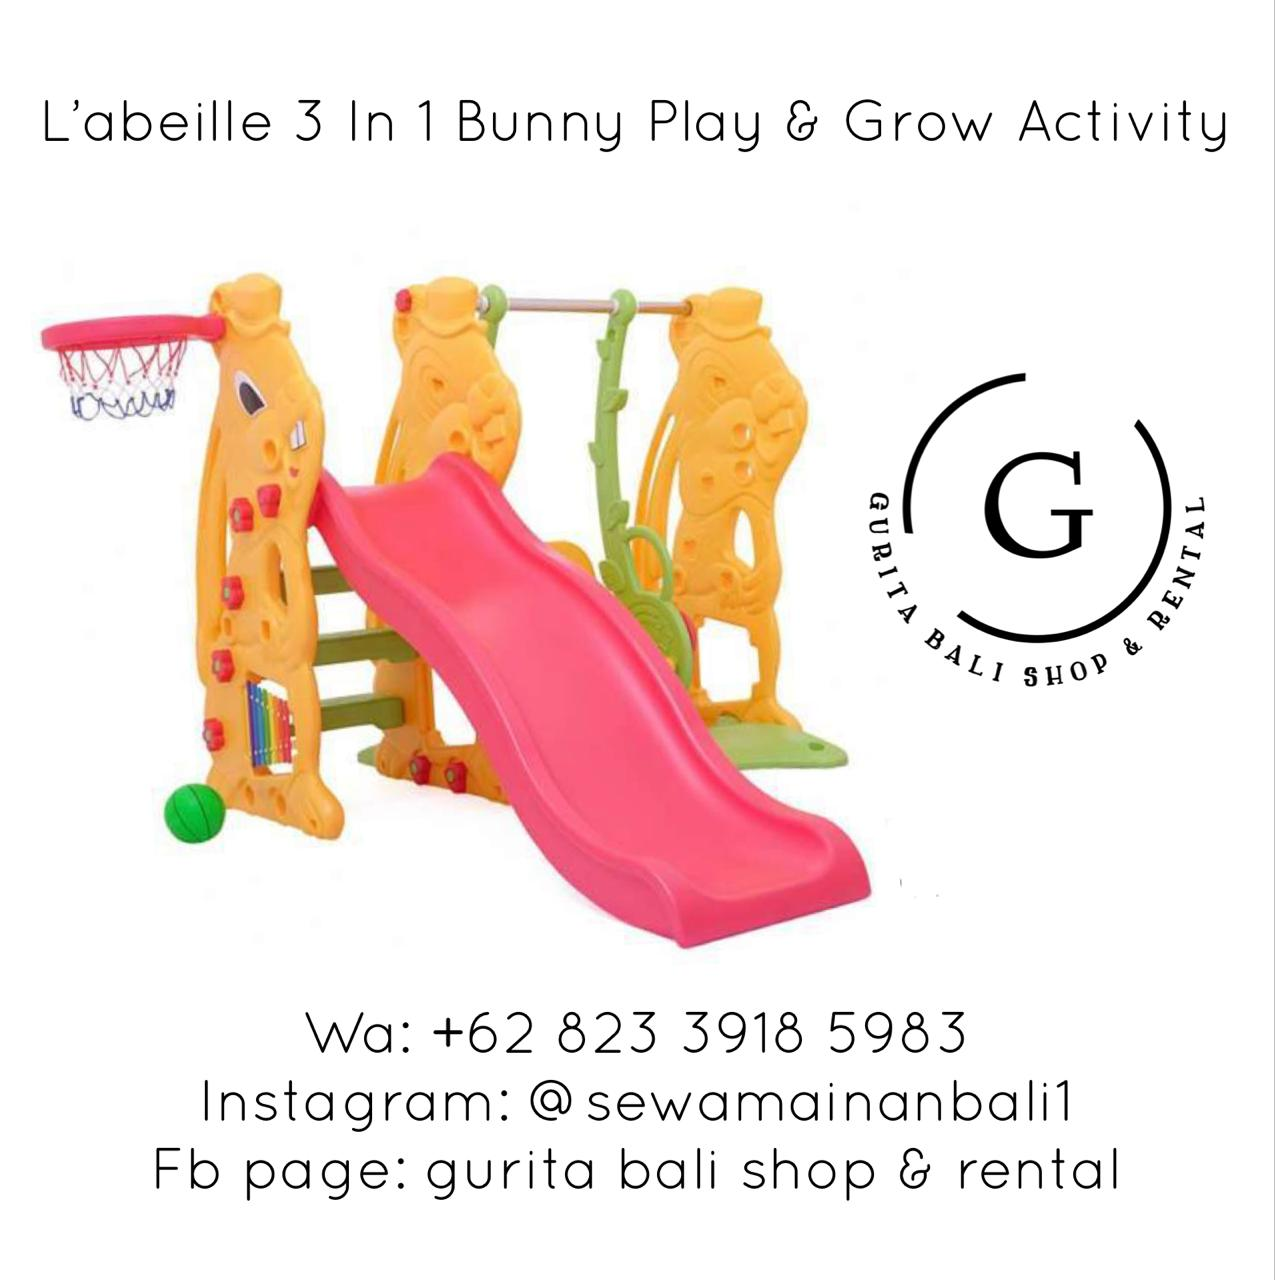 L'ABEILLE 3 IN 1 BUNNY PLAY & GROW ACTIVITY